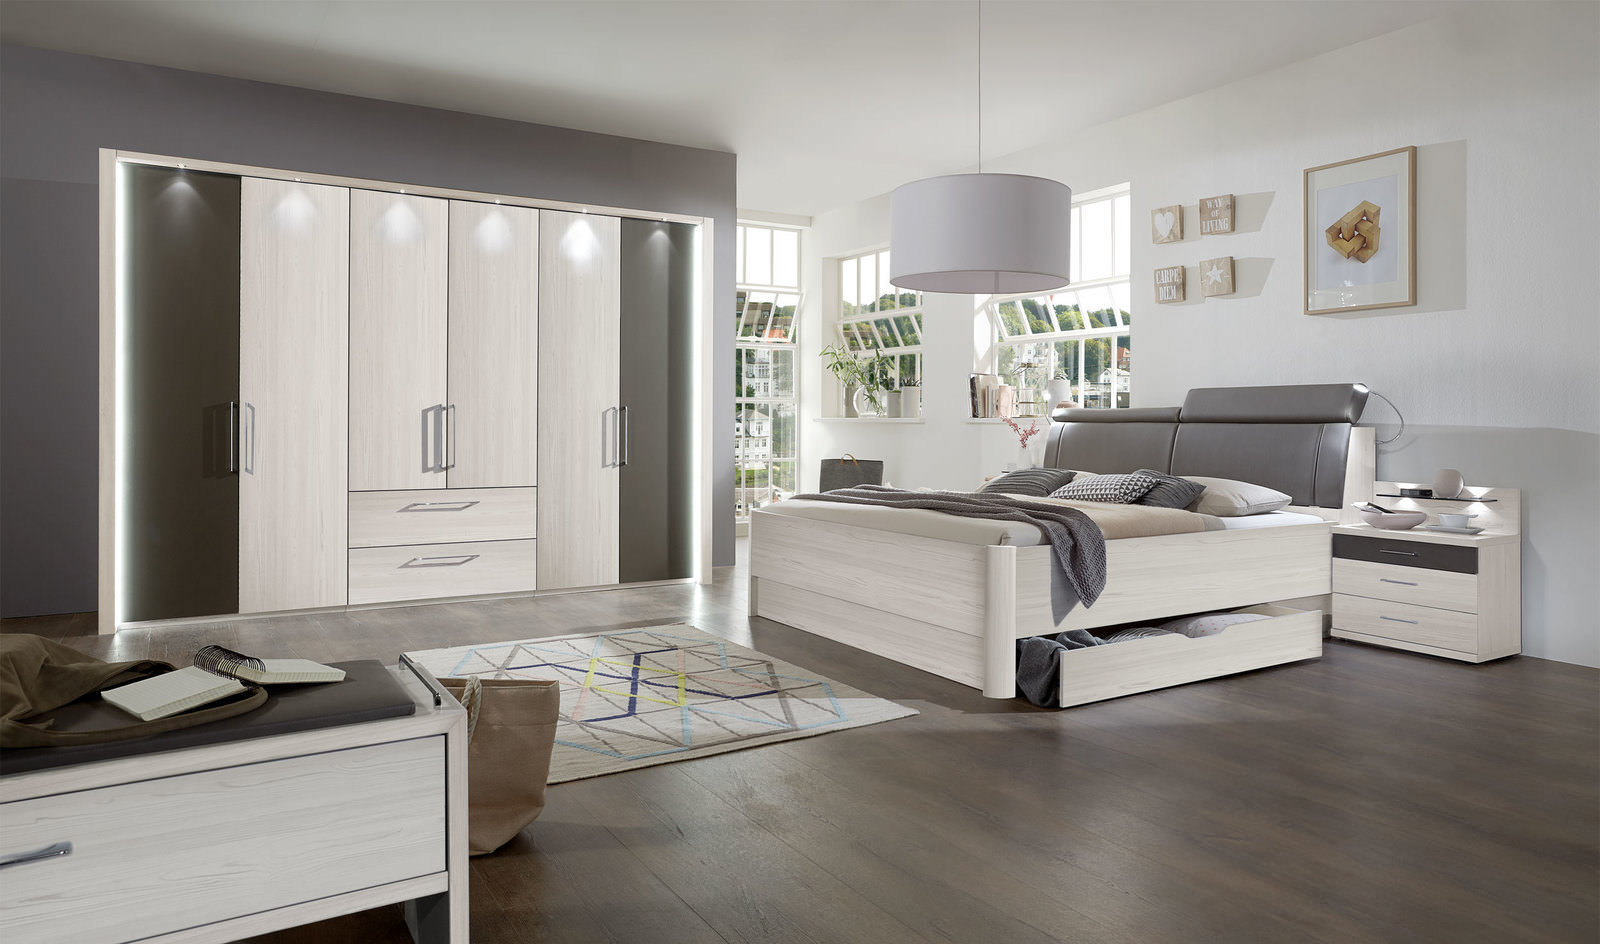 vito schlafzimmer online entdecken schaffrath ihr m belhaus. Black Bedroom Furniture Sets. Home Design Ideas